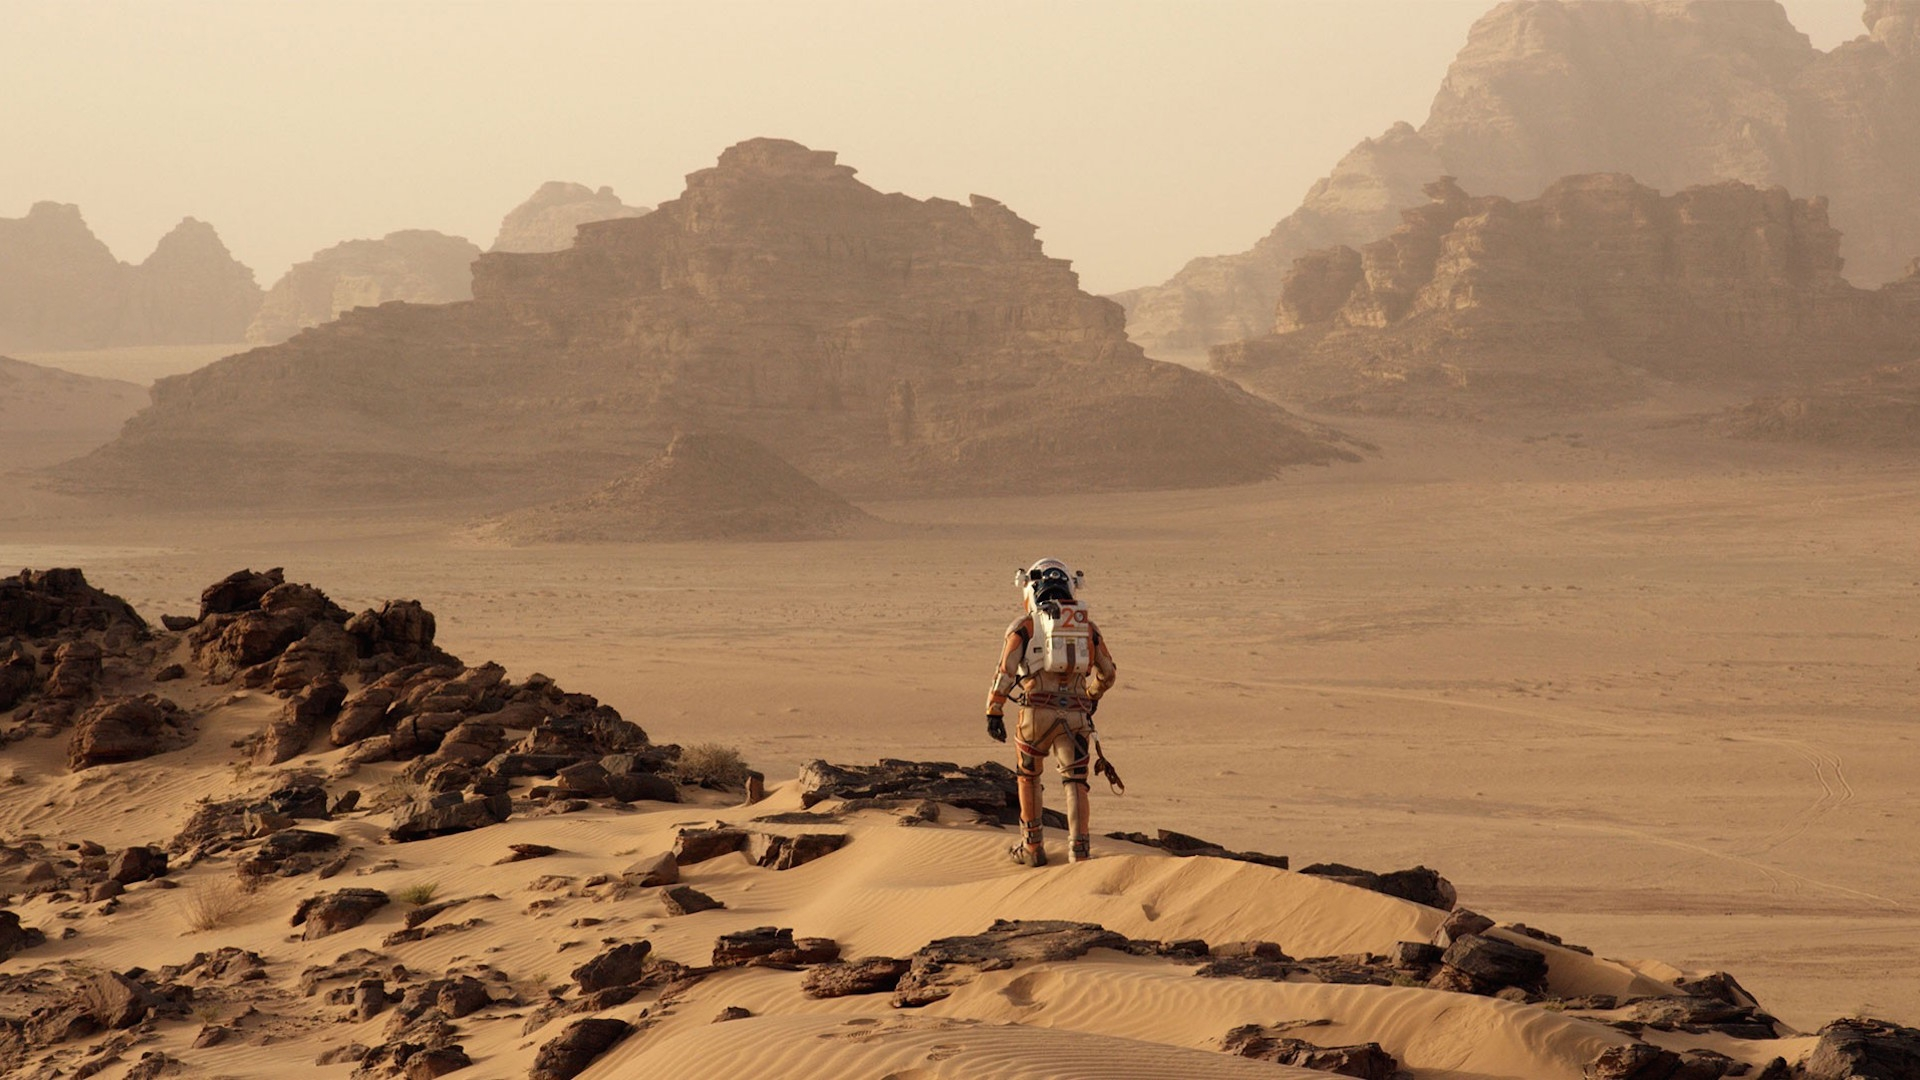 #65) The Martian - (2015 - dir. Ridley Scott)